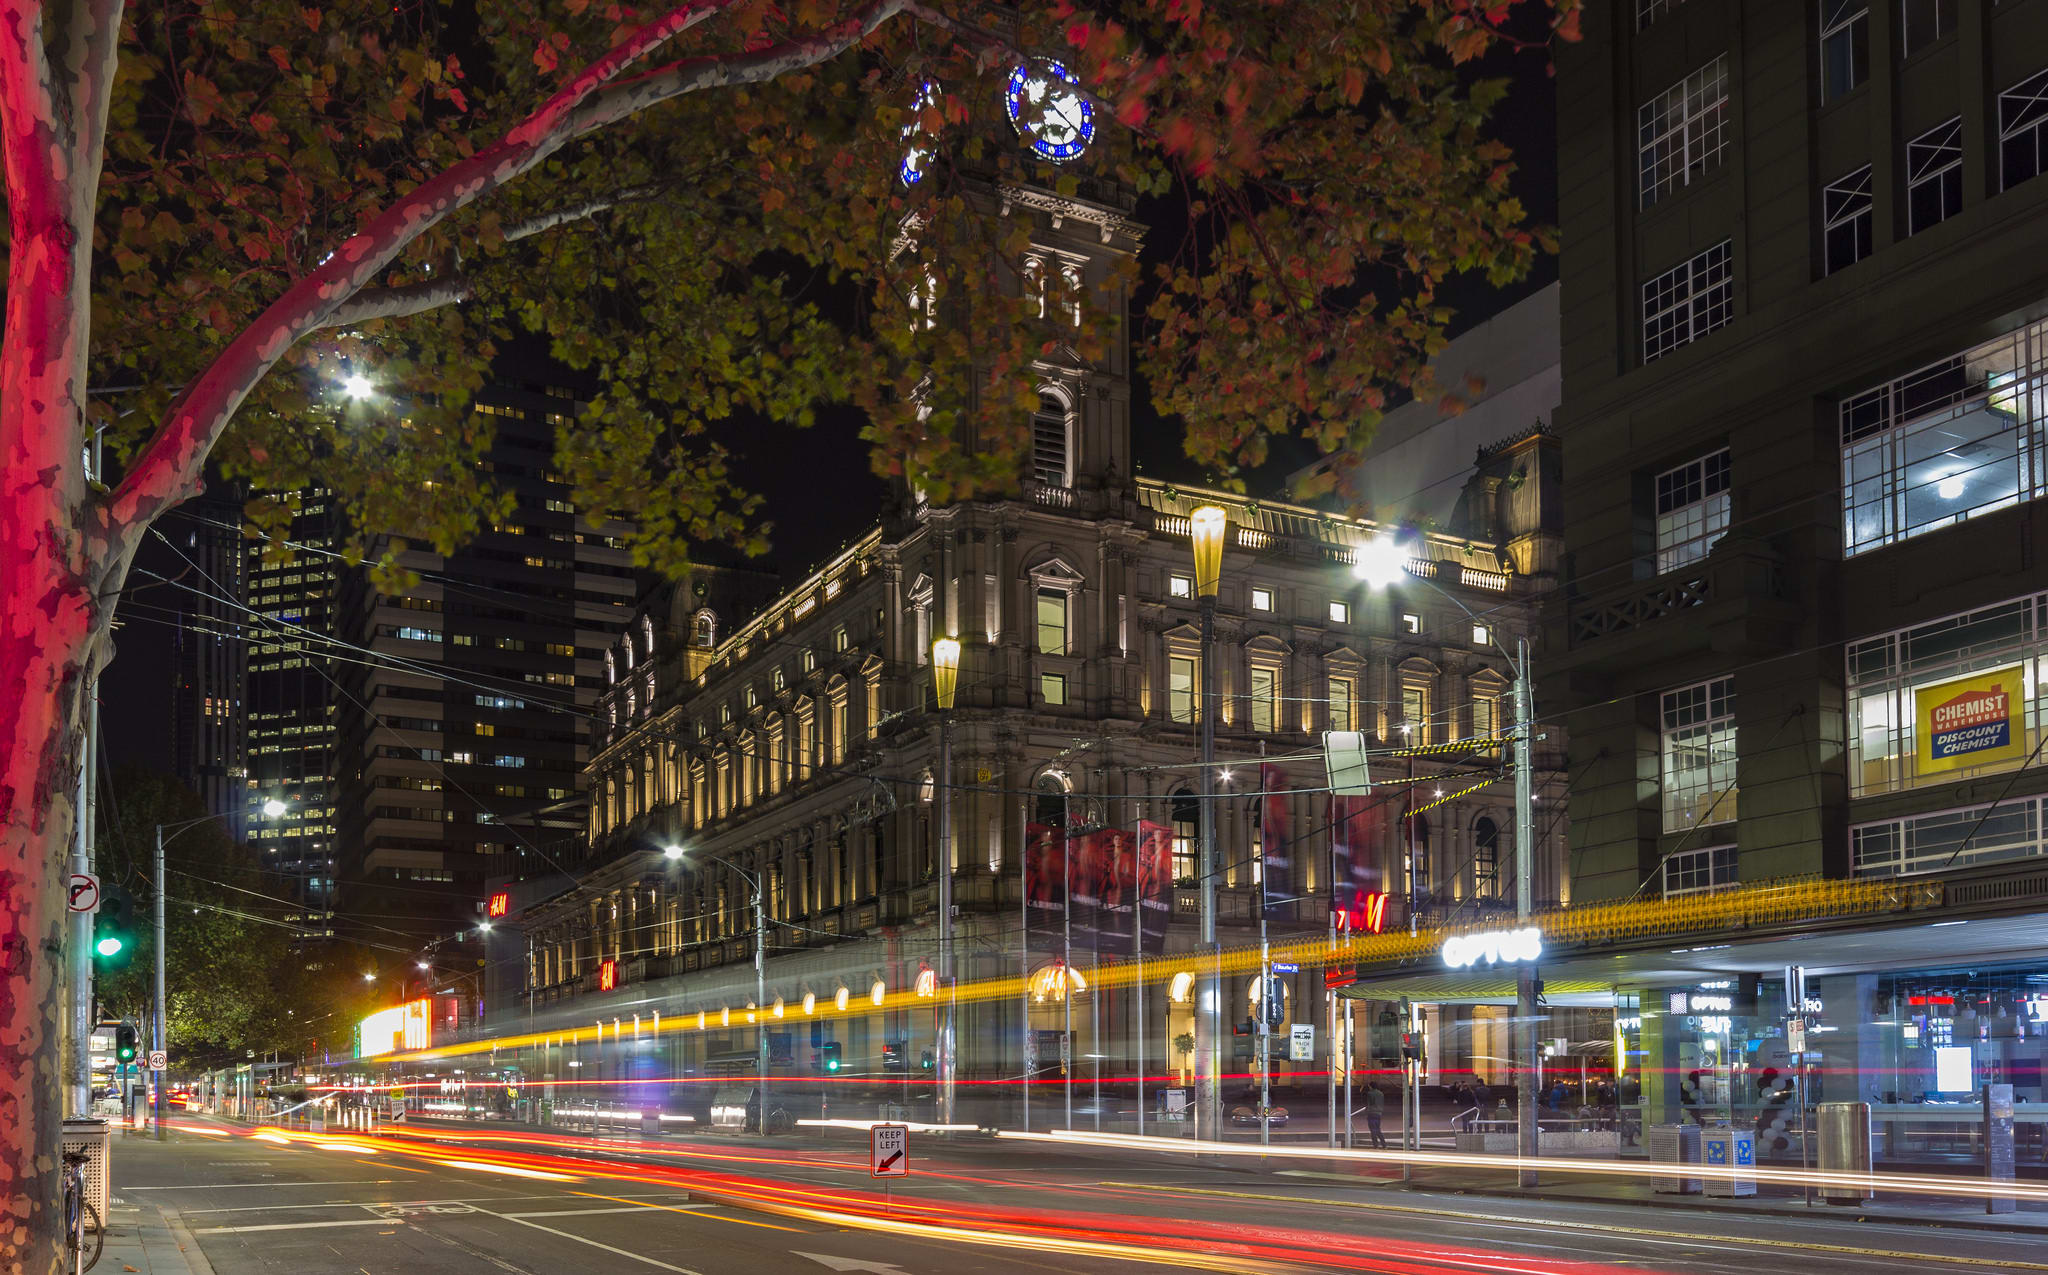 Infrastructure Australia calls on Federal Government to provide more leadership on cities